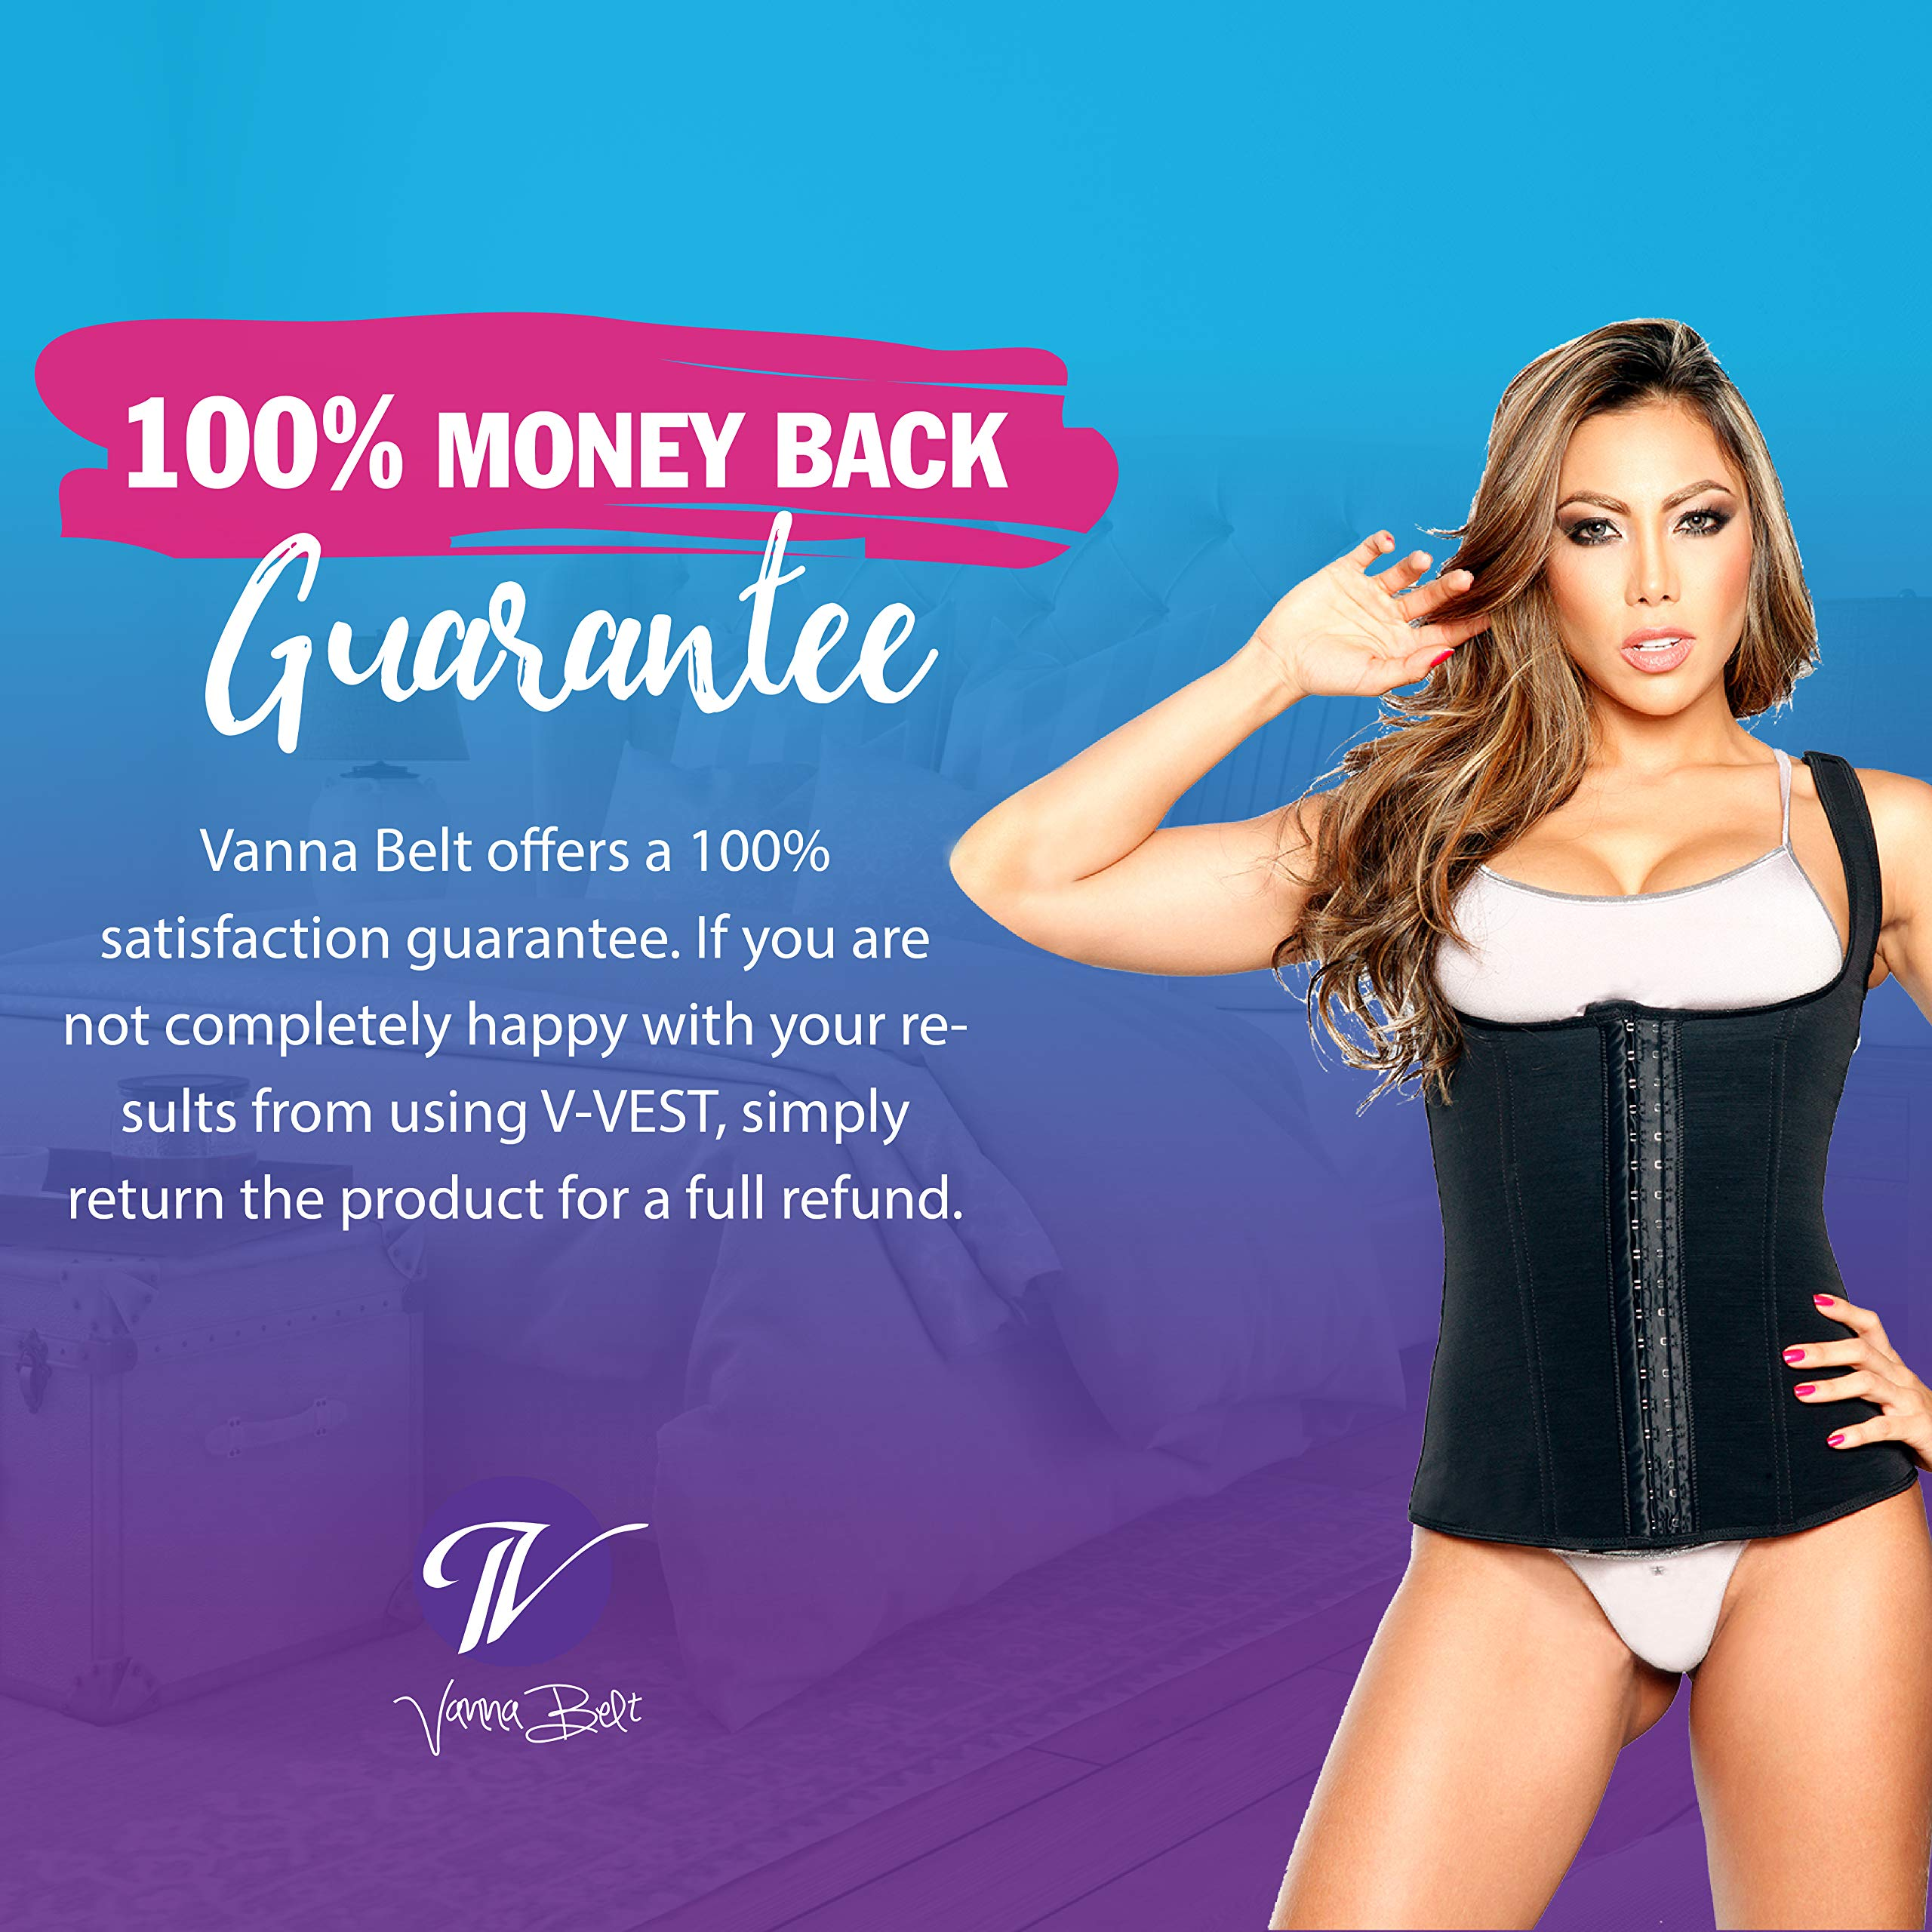 Vanna Belt Waist Trainer V-VEST Waist and Back Trimmer - XXL - Instantly Slims Midsection 2-3 Inches While Wearing Product, Lifts and Supports Busts, Helps Correct Posture by Vanna Belt (Image #6)